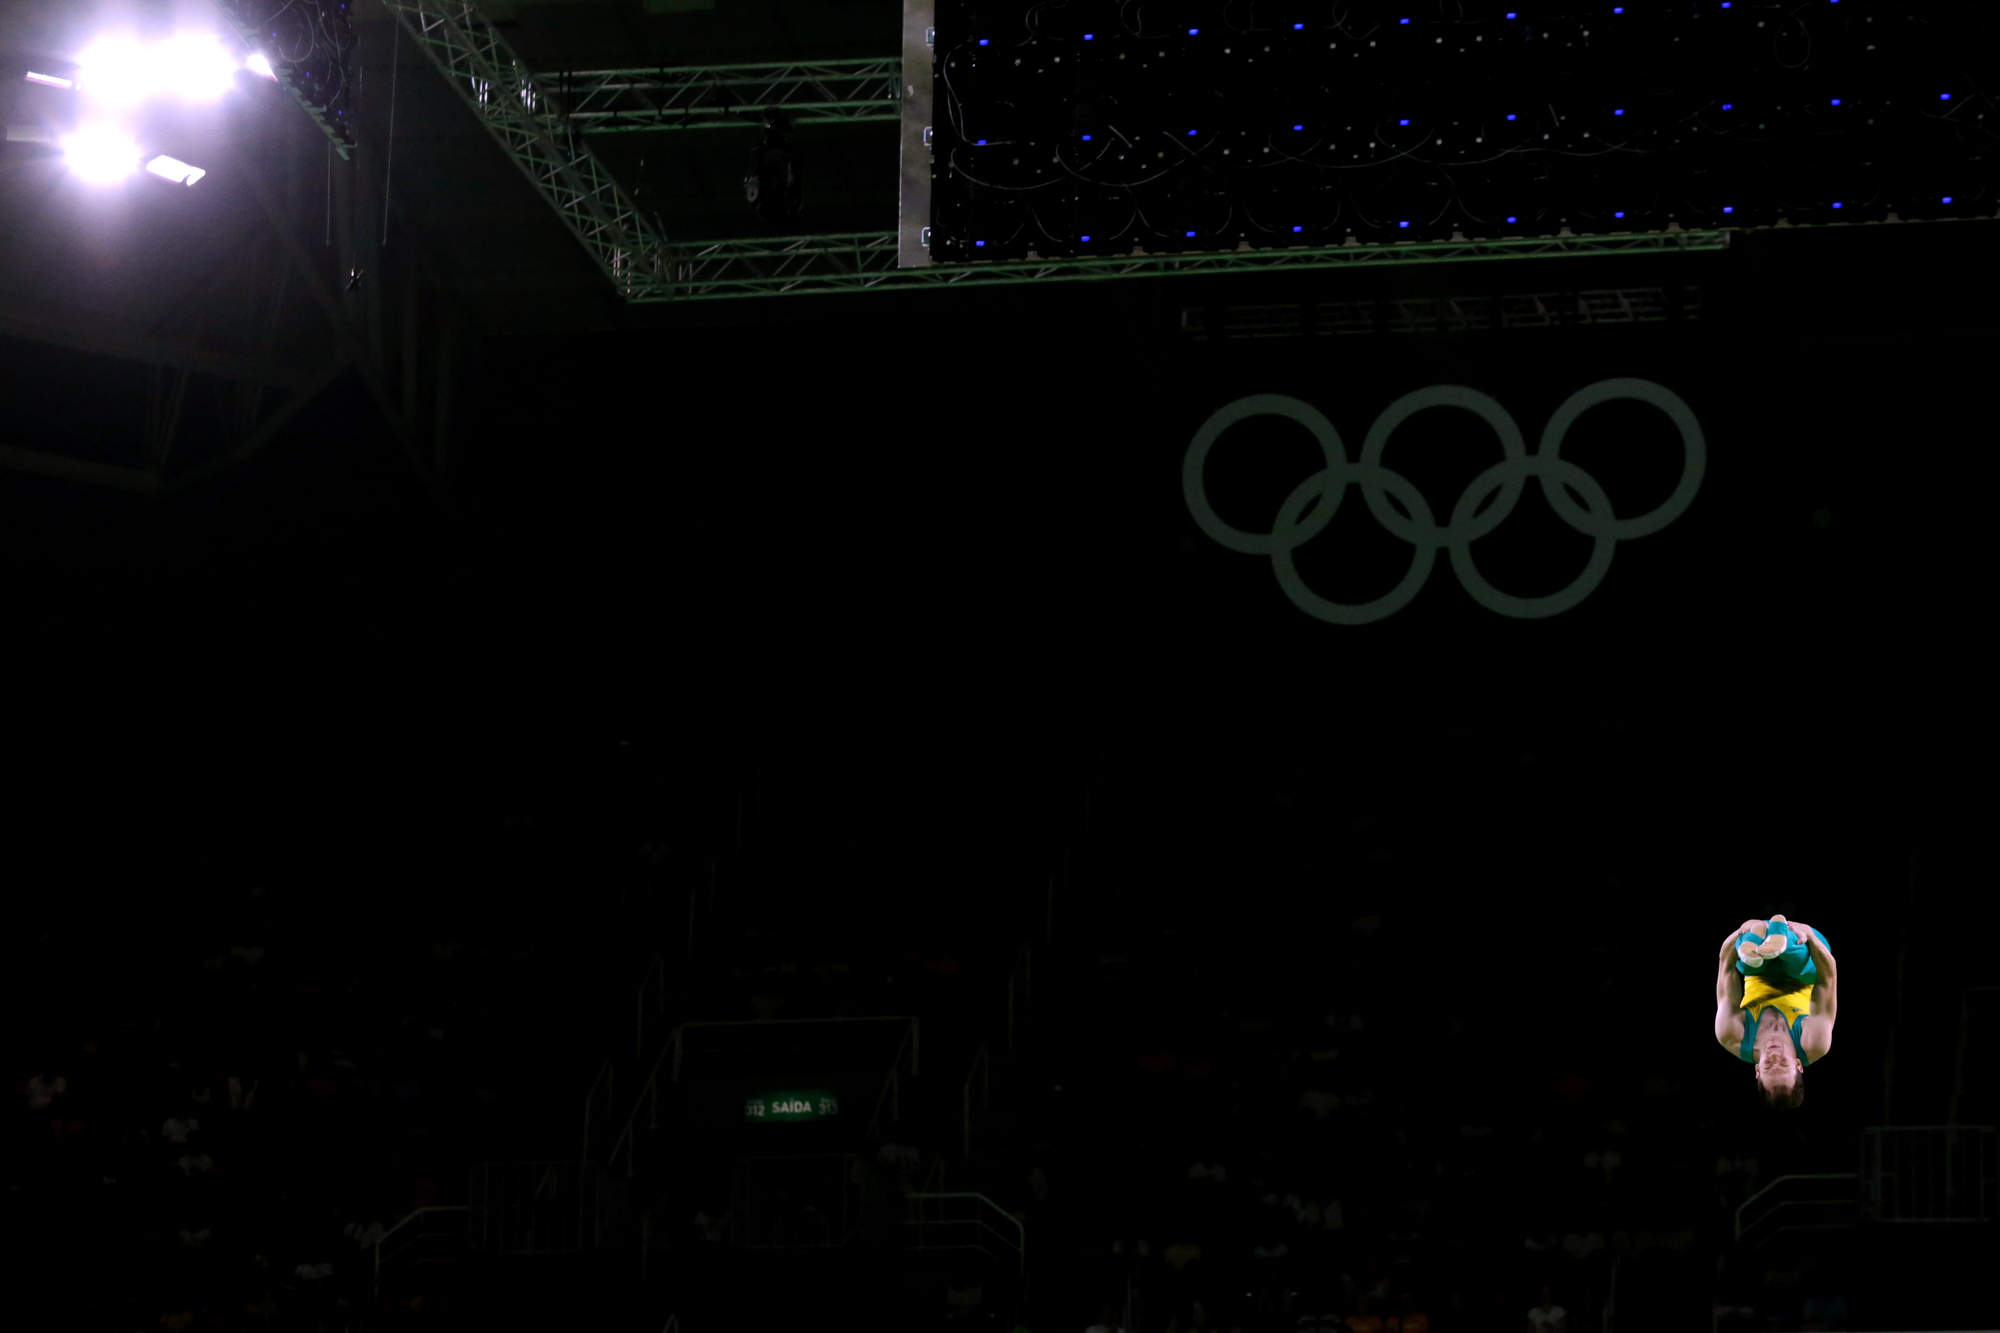 Australia's Blake Gaudry competes in the qualifying round of Men's Trampoline Gymnastics in the Rio Olympic Stadium at the 2016 Rio Summer Olympics in Rio de Janeiro, Brazil, on August 13, 2016.